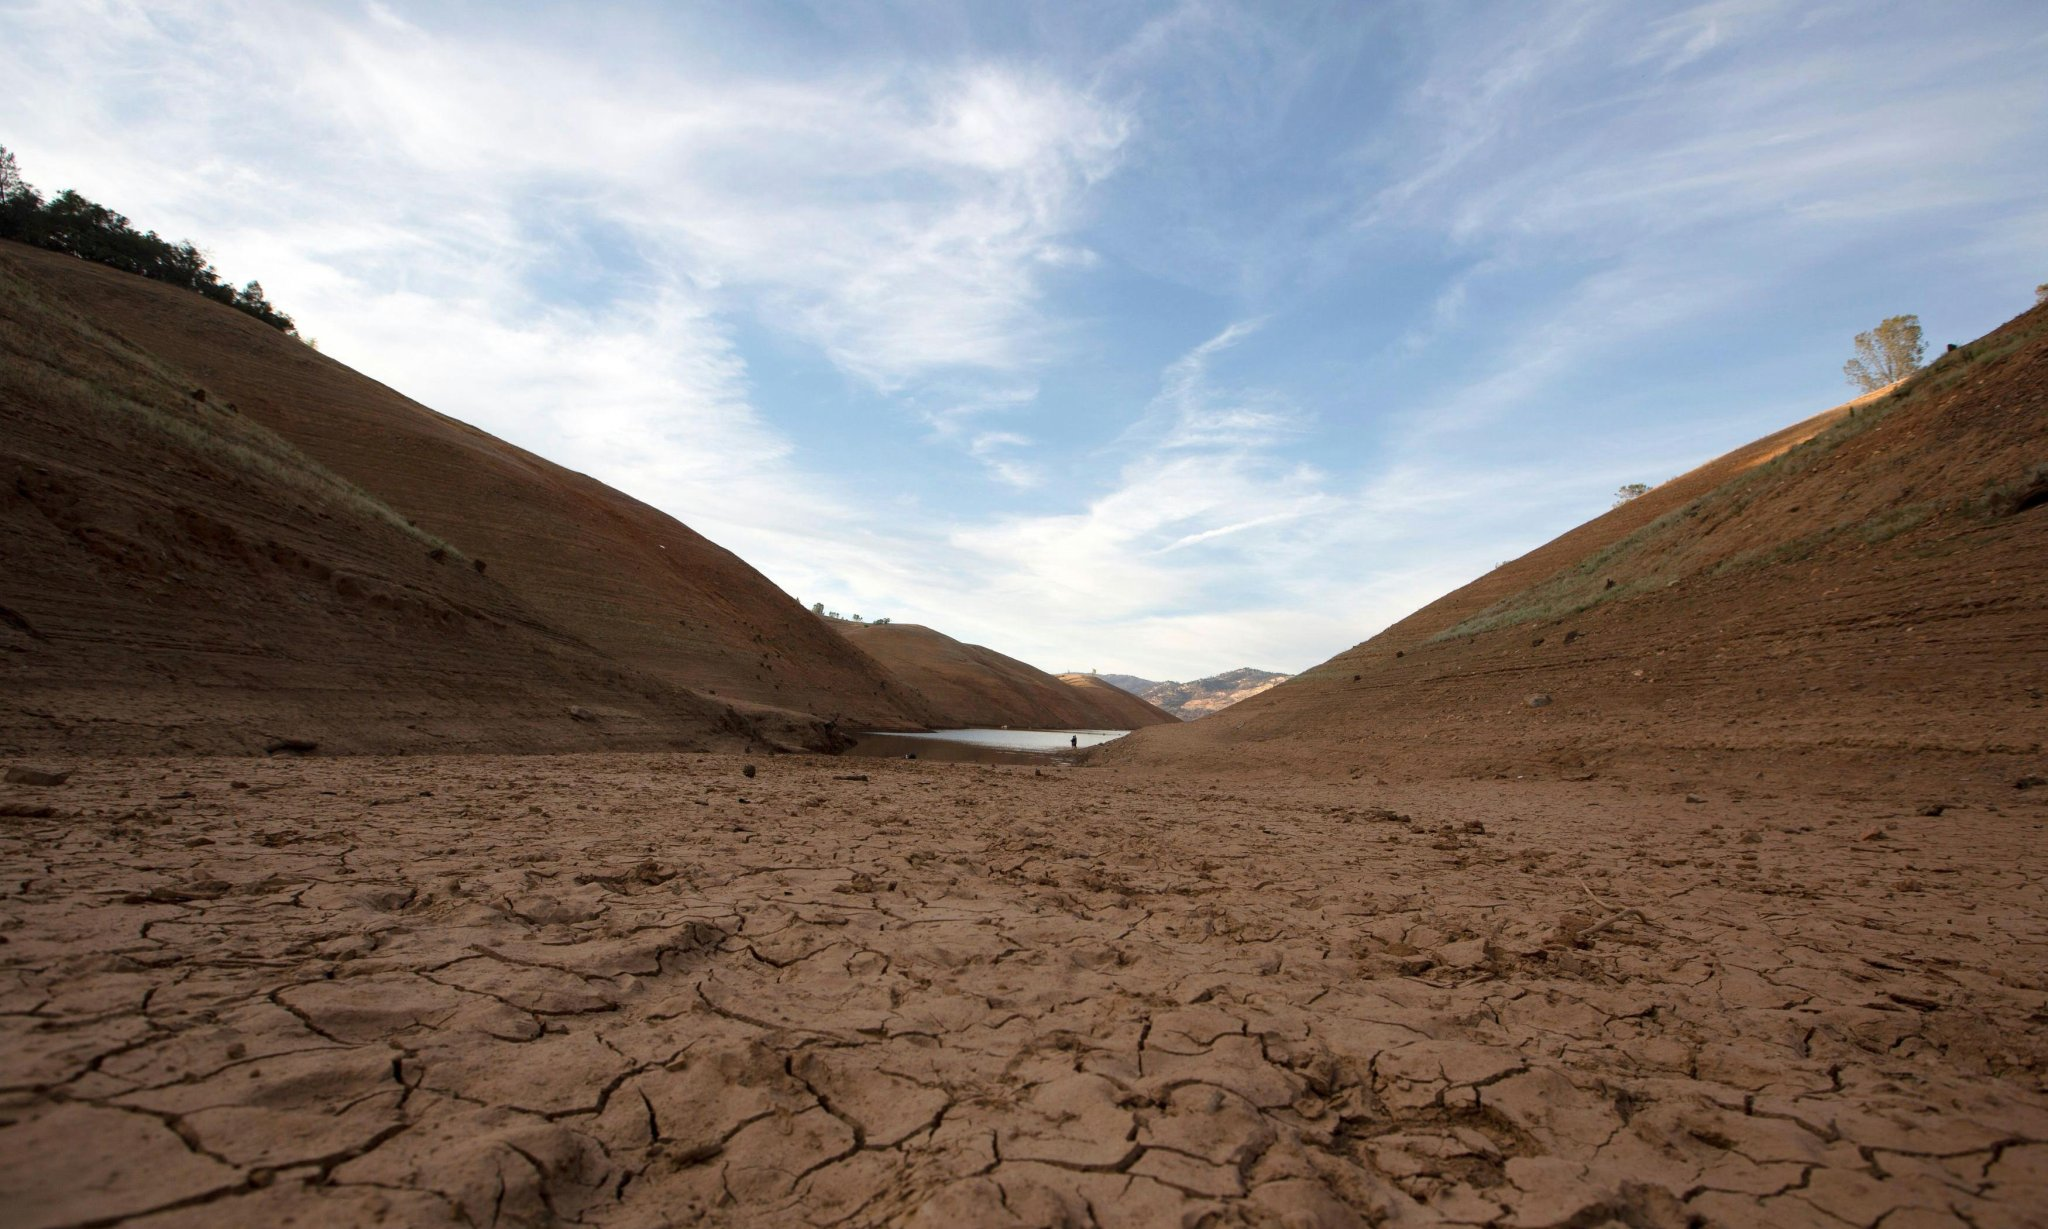 'Potentially the worst drought in 1,200 years': scientists on the scorching US heatwave